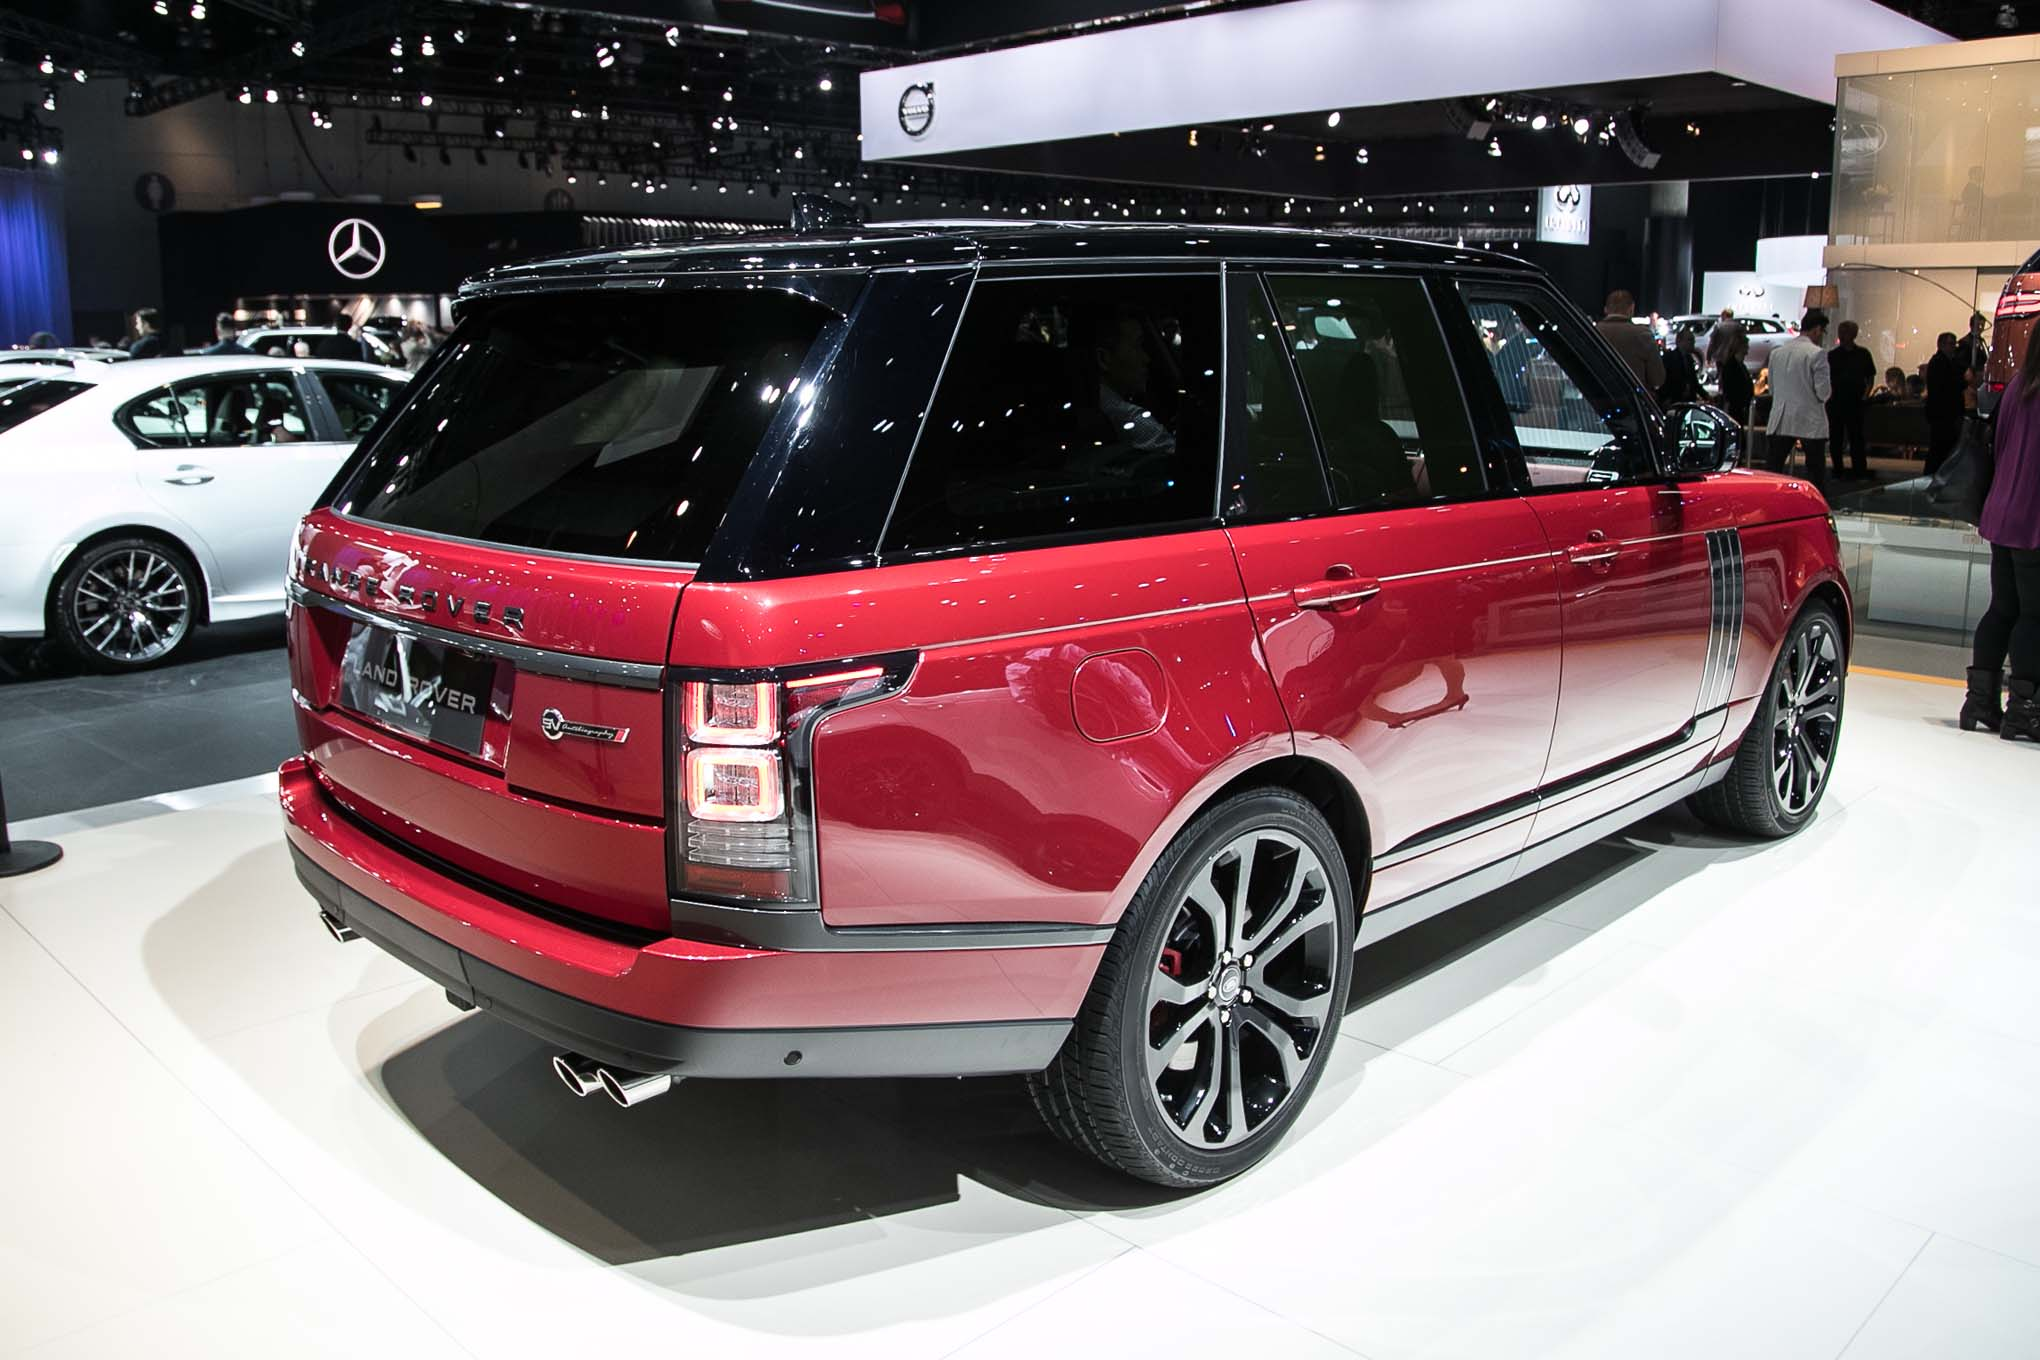 2017 range rover svautobiography dynamic first drive review automobile magazine. Black Bedroom Furniture Sets. Home Design Ideas